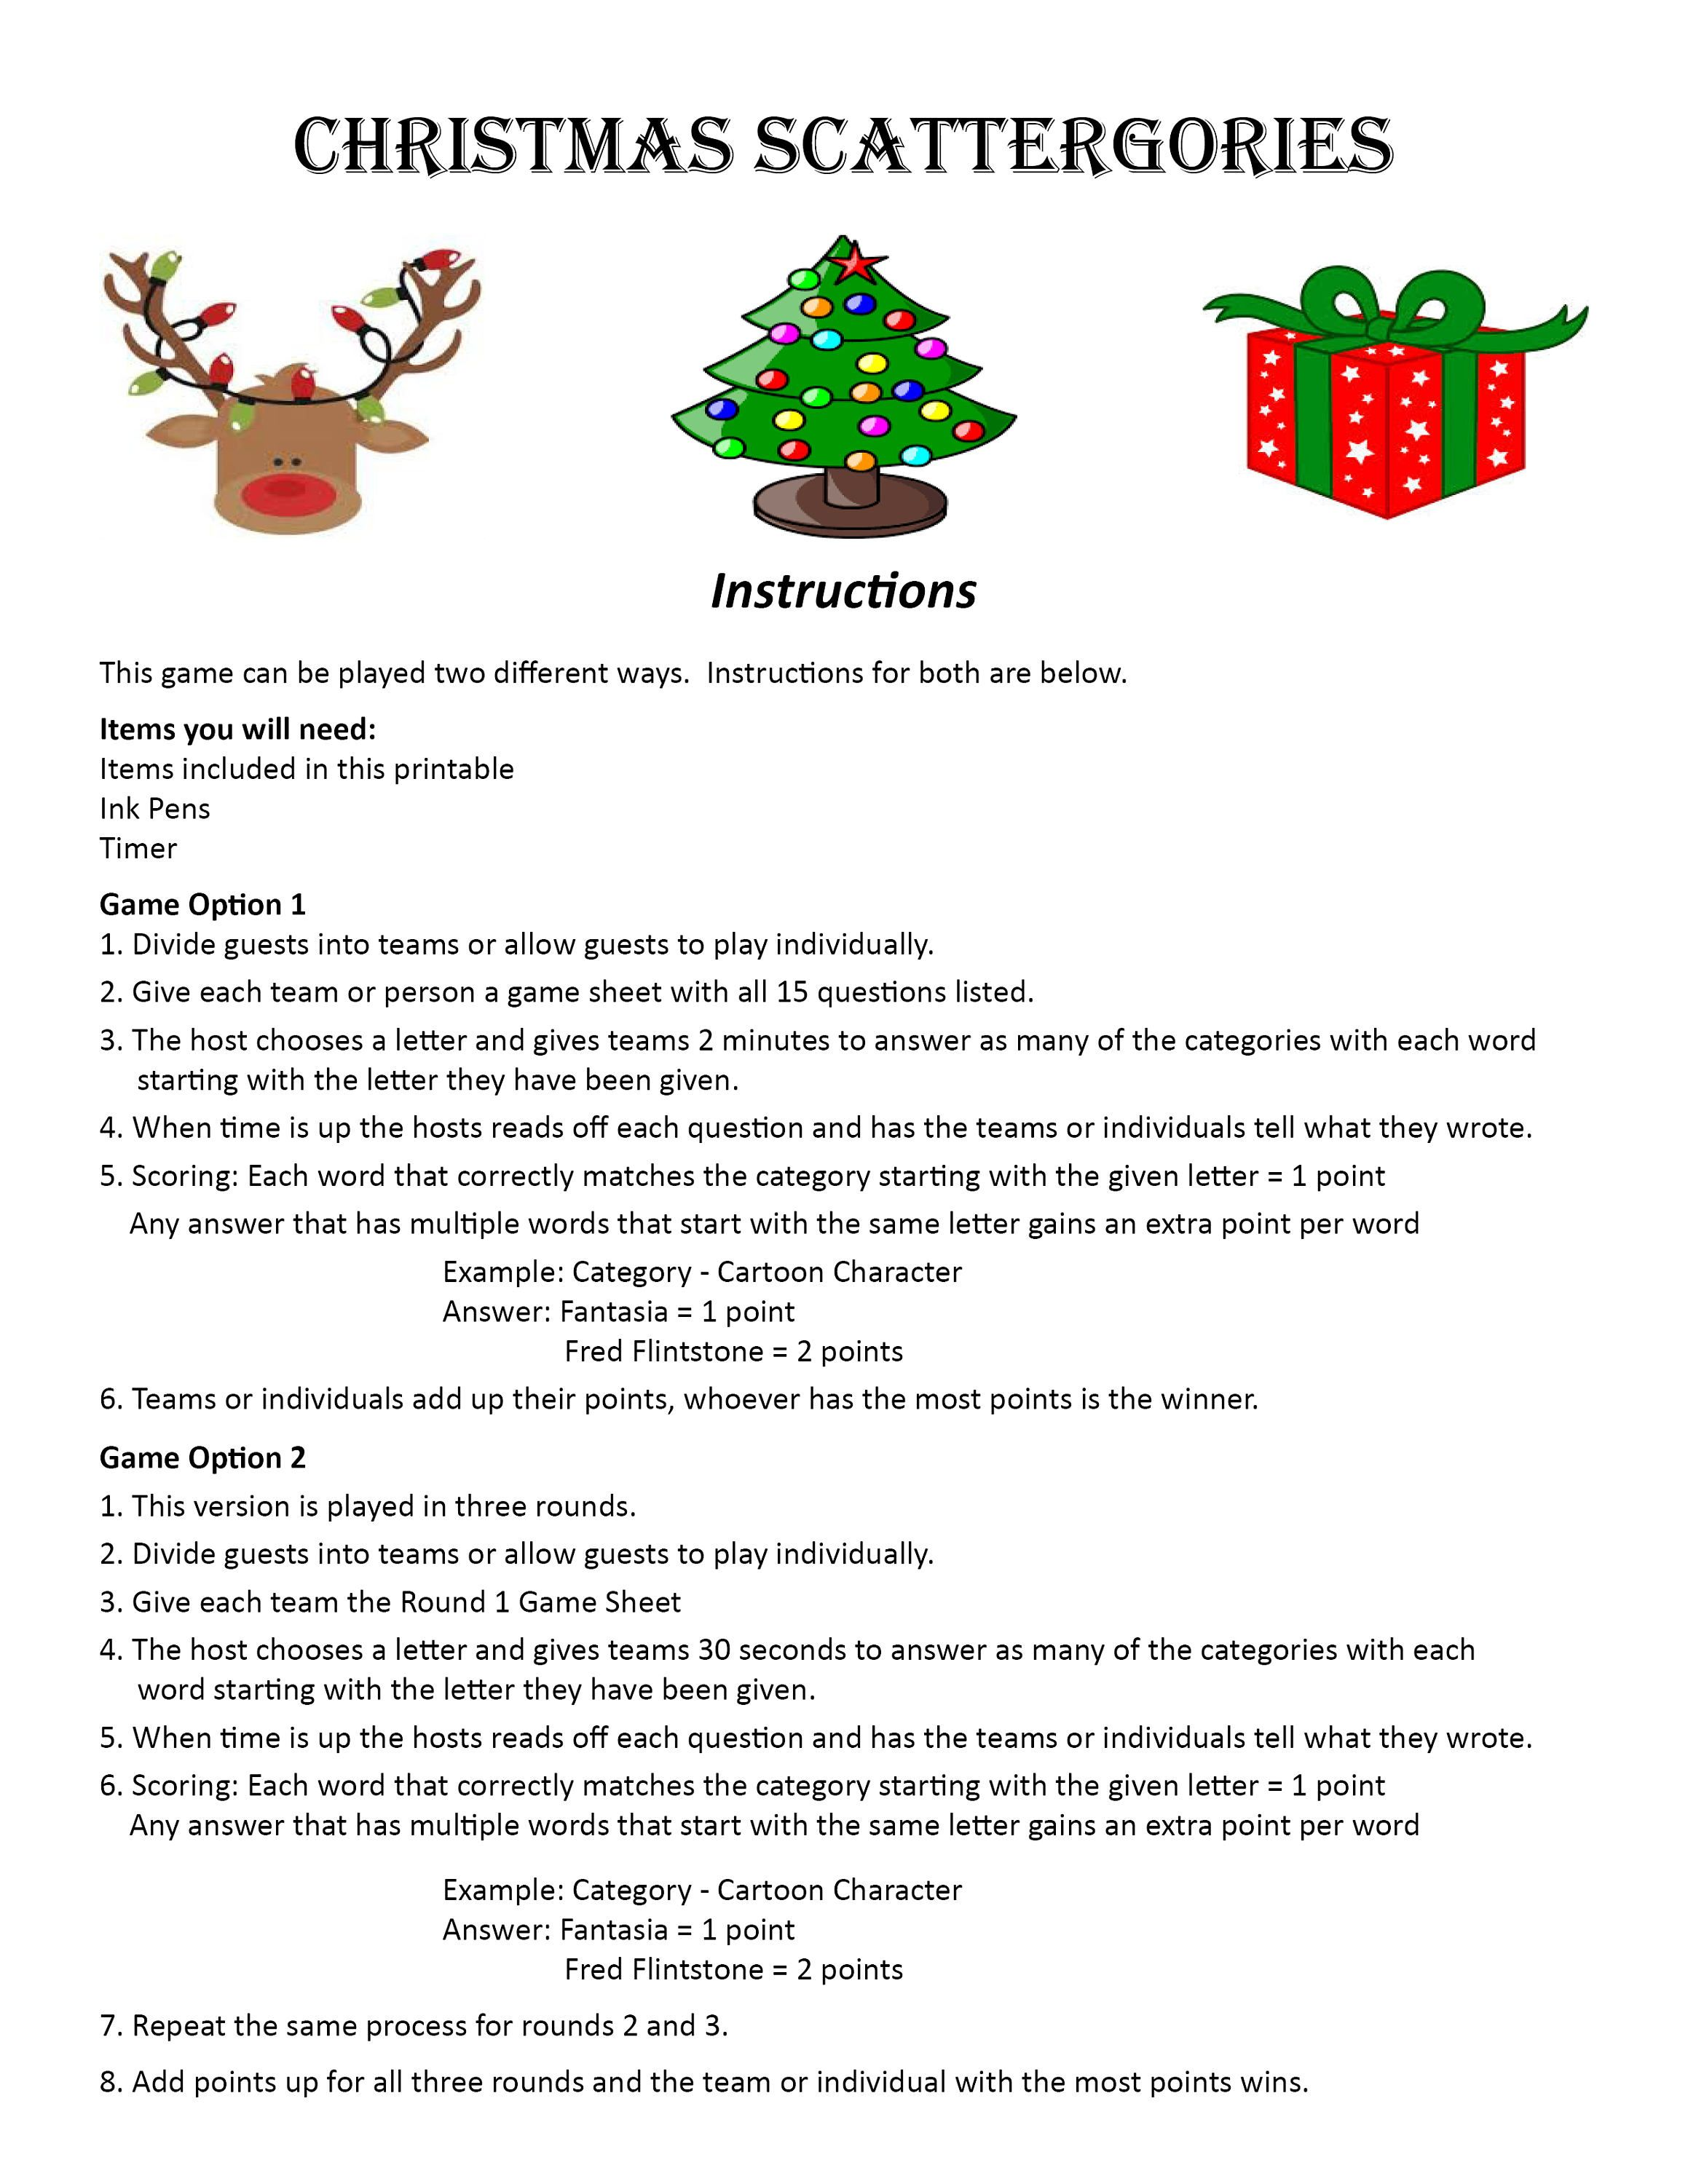 Christmas Scattergories DIGITAL DOWNLOAD, Word Game, Christmas Game ...